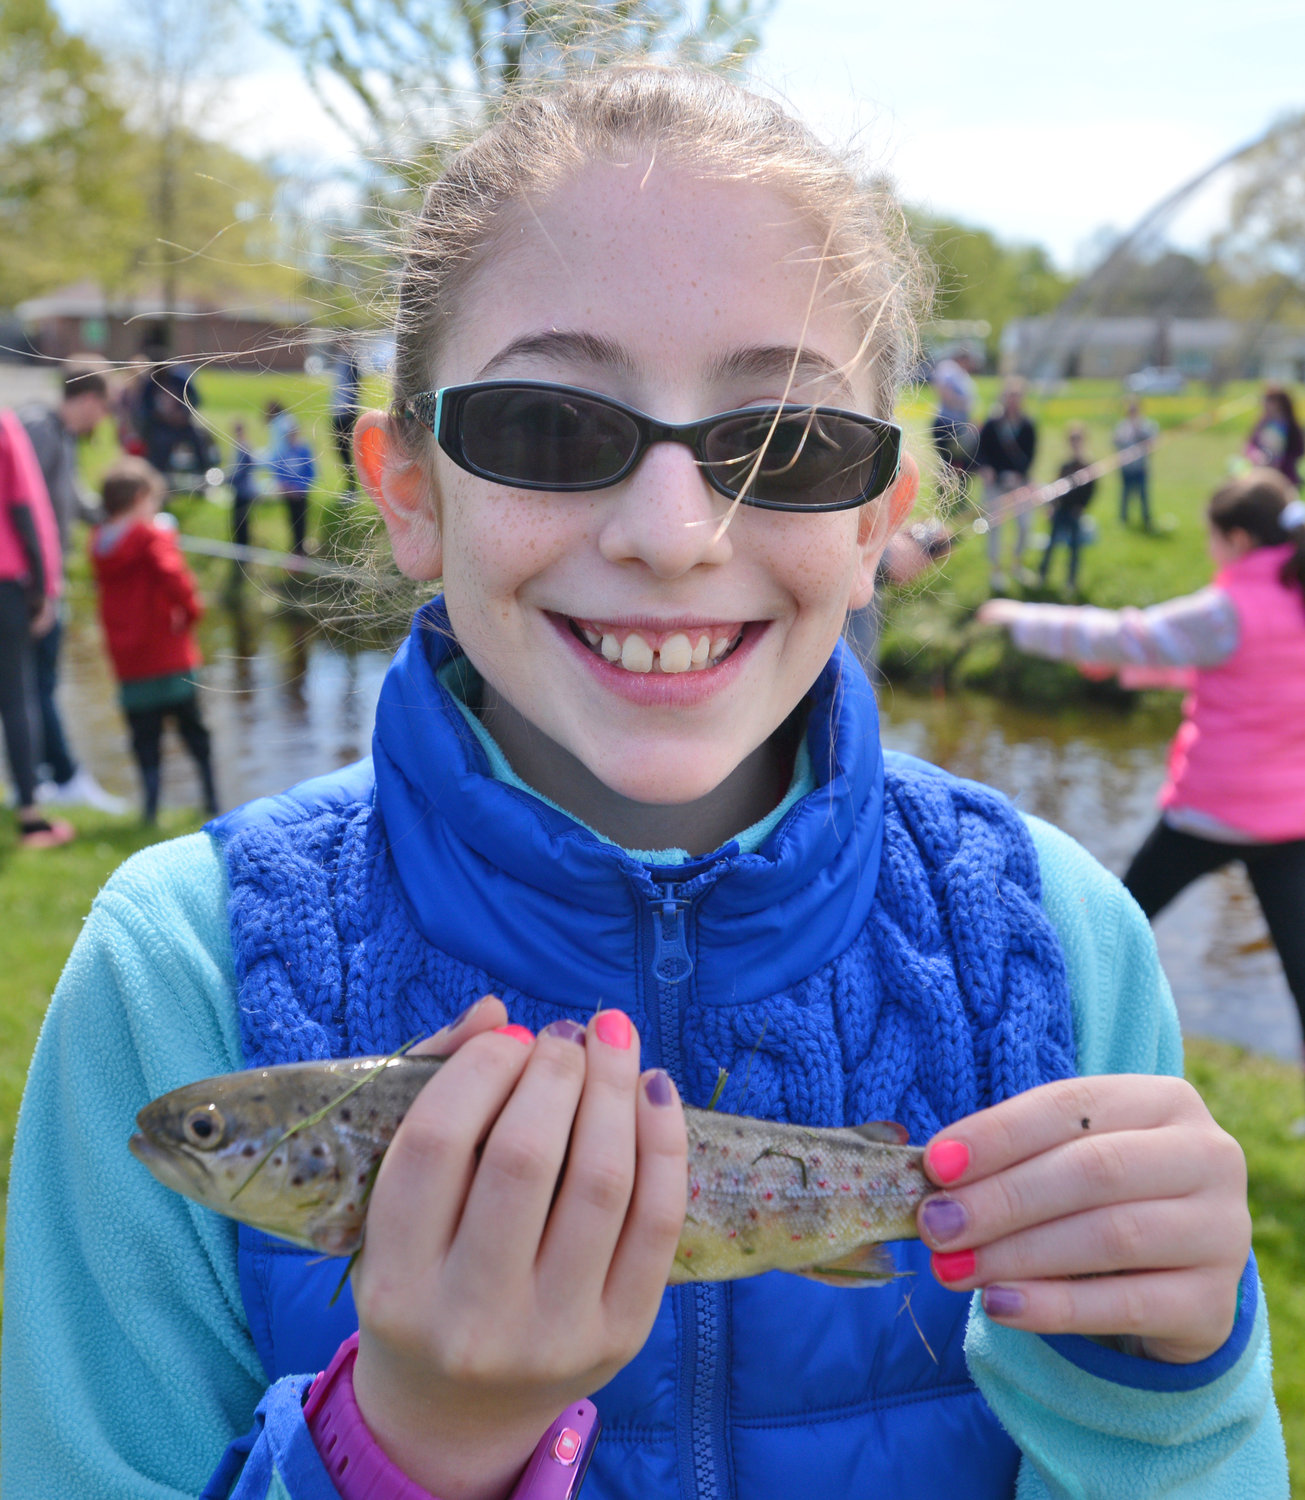 RAINBOWS — Sofia Malone, 11, holds up her catch of the day at the Rick LeFevre Fishing Derby. She was at the event with her dad, Mark Malone.